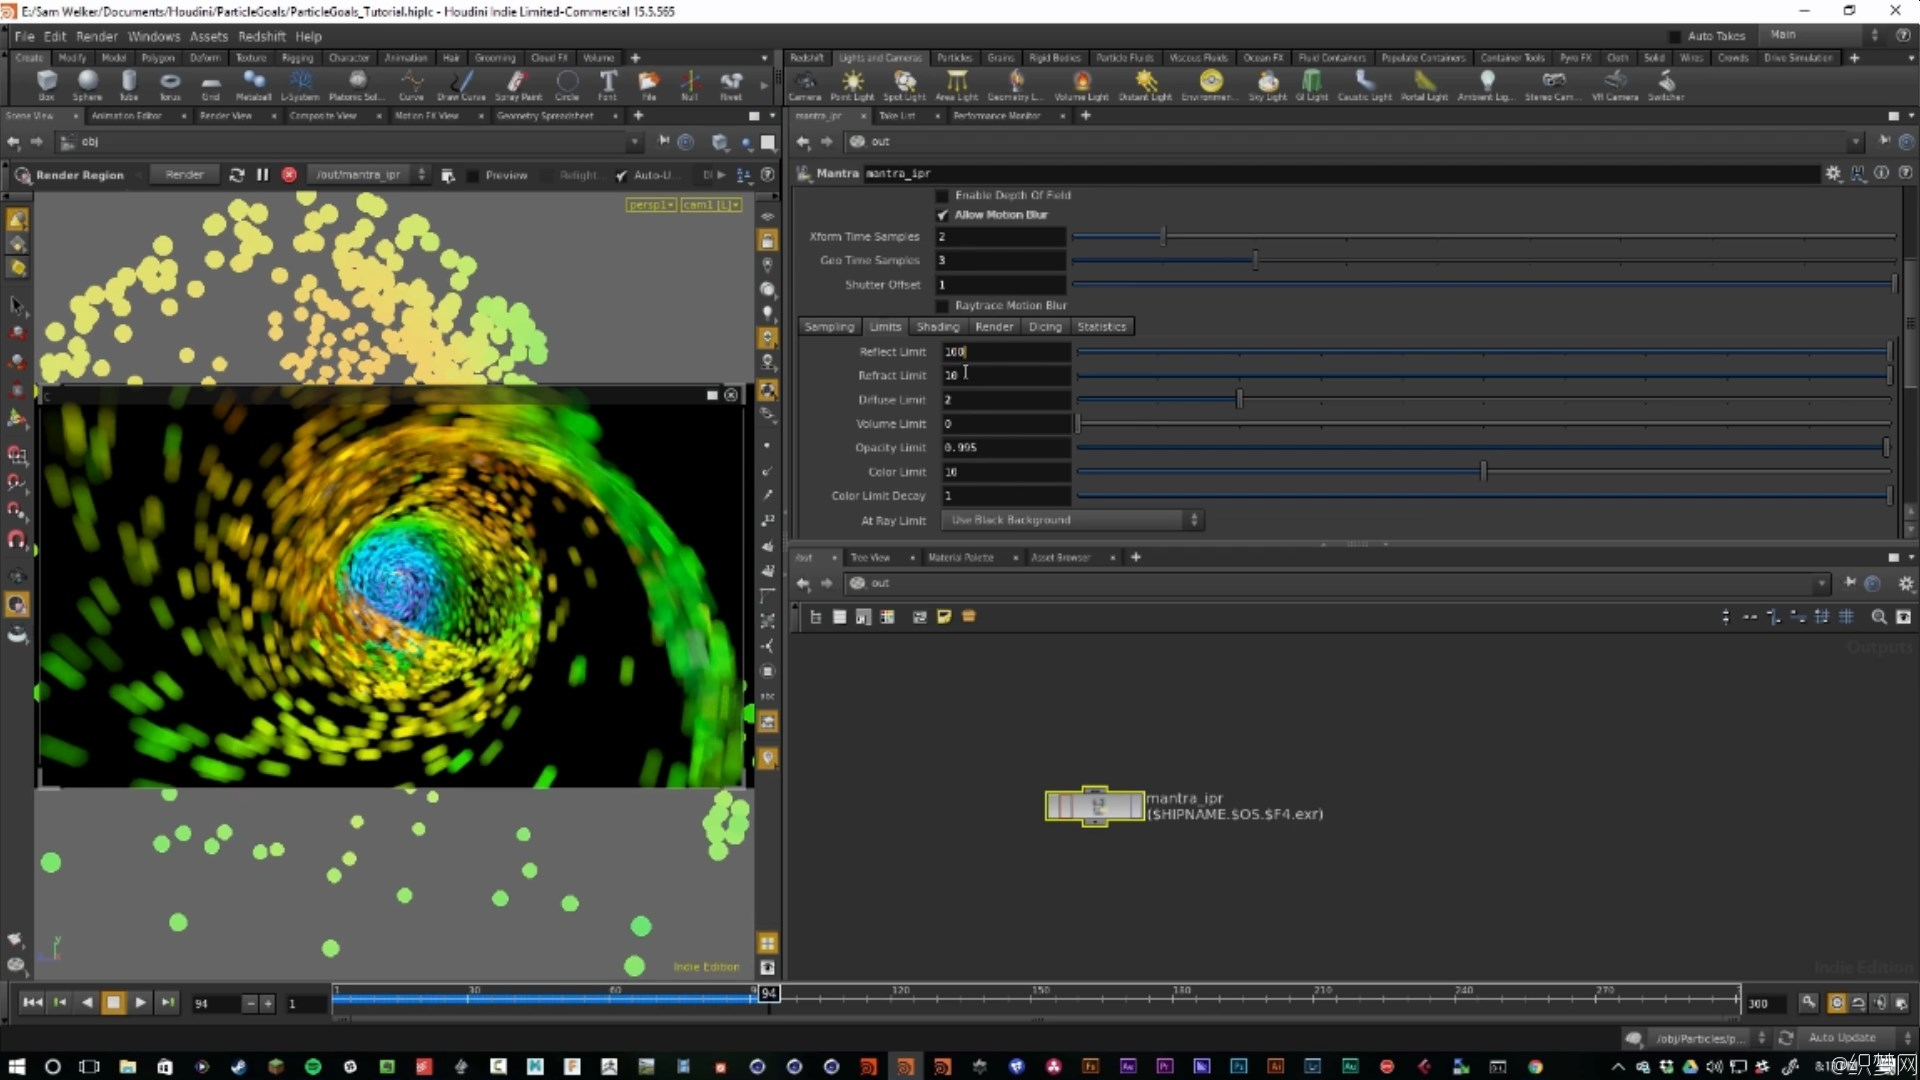 Houdini制作粒子围绕曲线路径动画特效视频教程 - Creating Particle Goals and Curves in Houdini